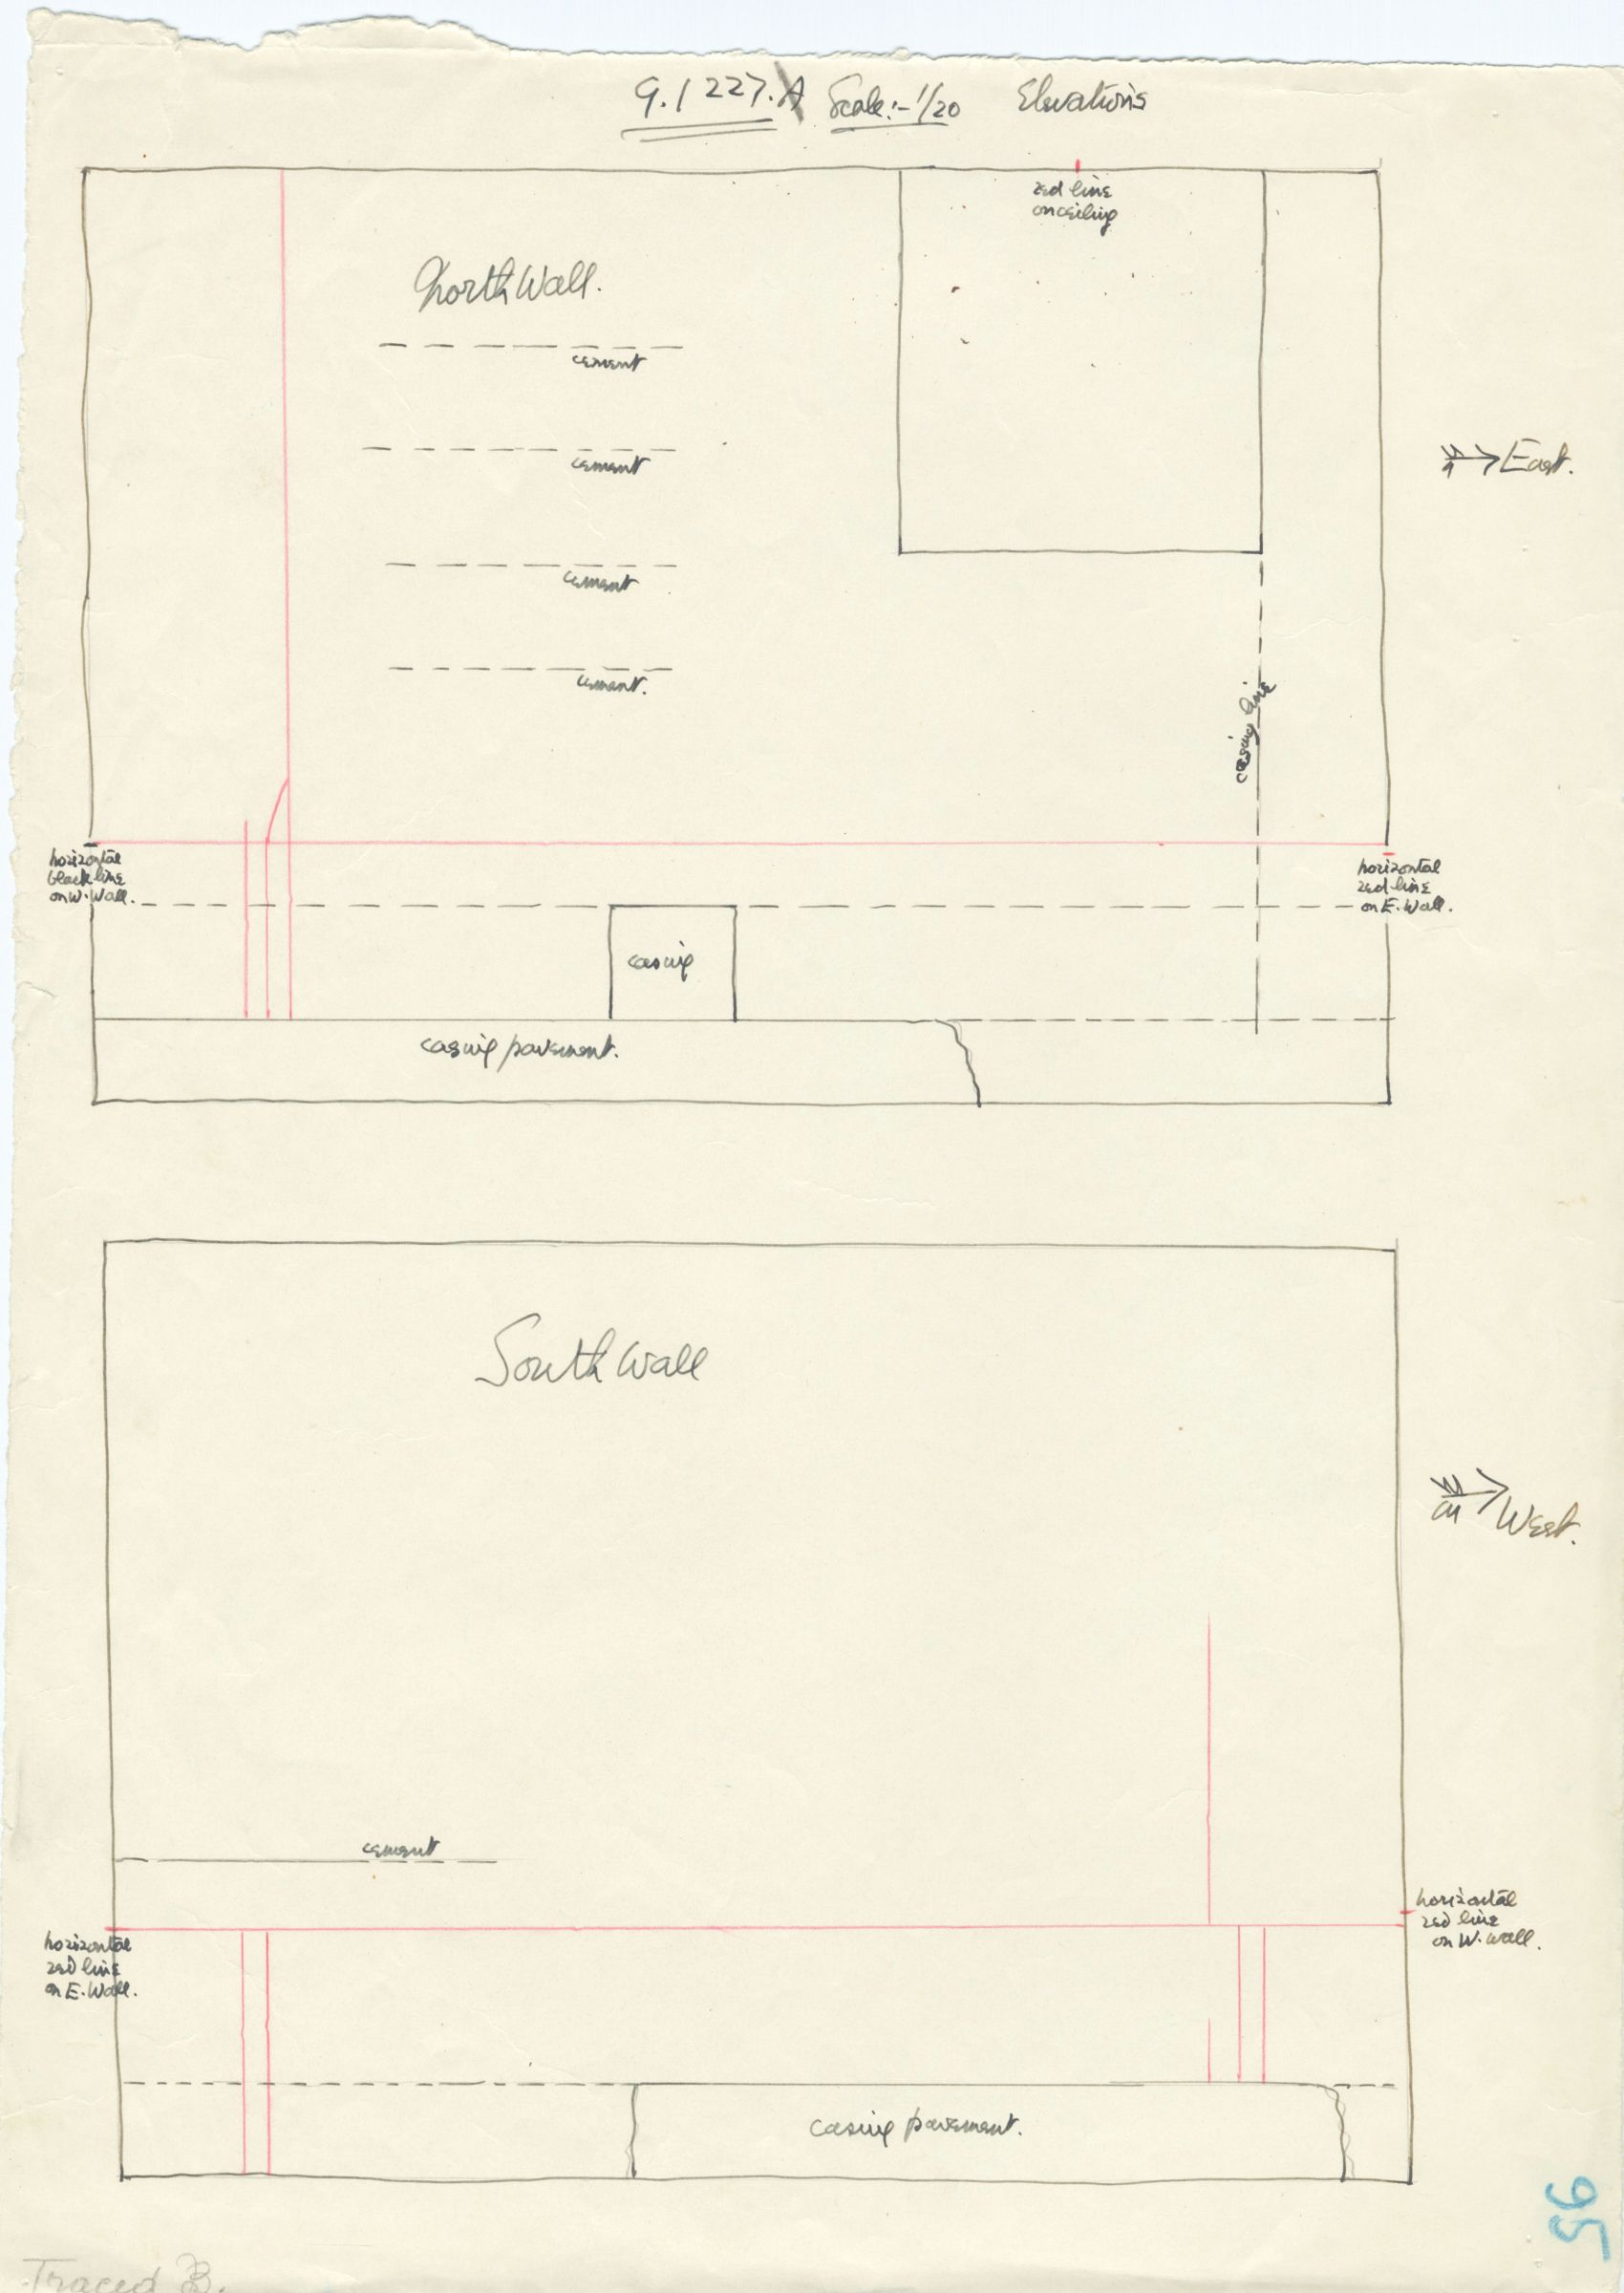 Maps and plans: G 1227, Shaft A, wall elevations (south and north)